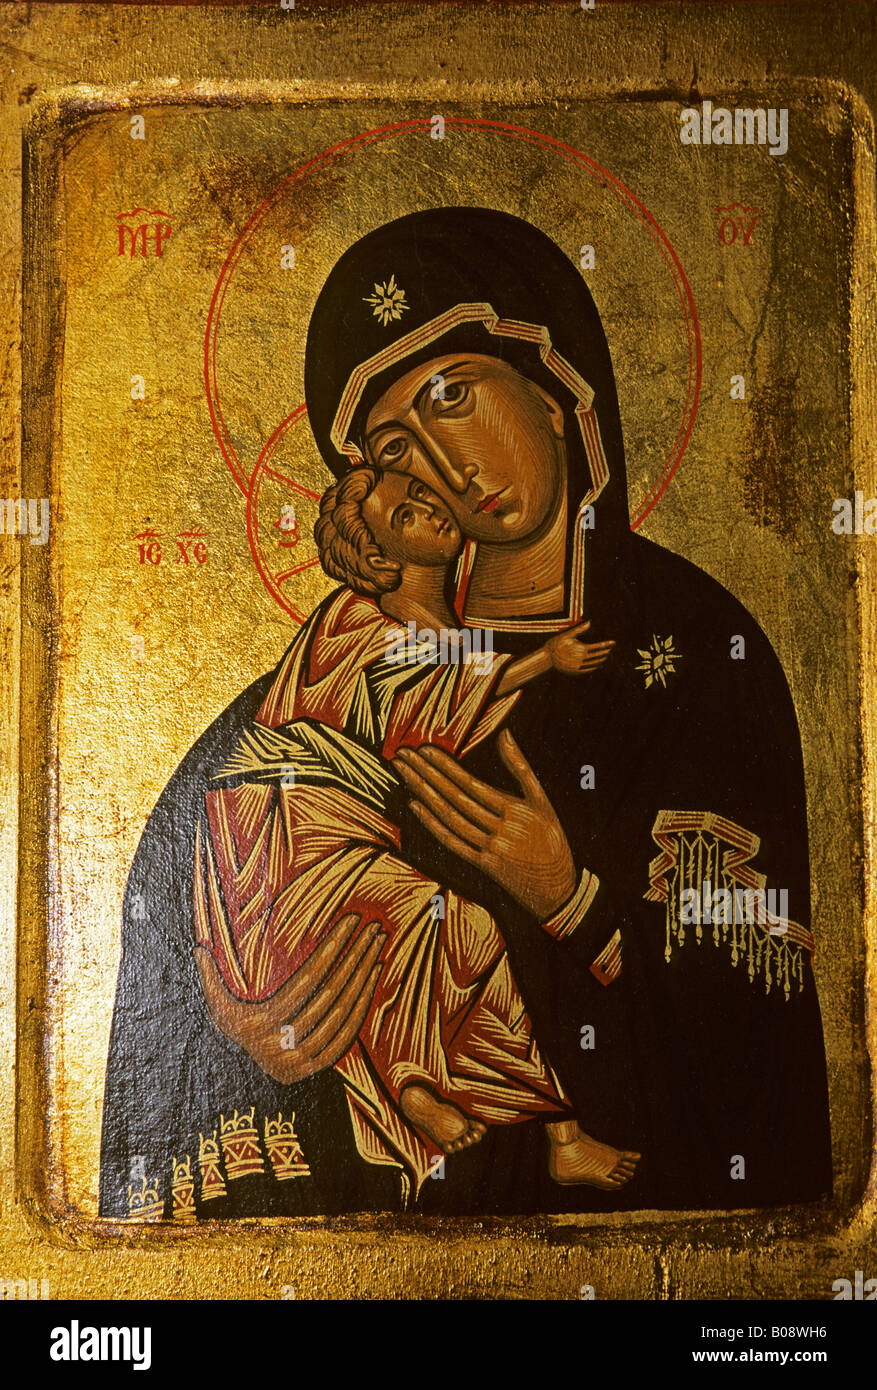 Icon painting of the Virgin Mary holding baby Jesus, Cyprus - Stock Image